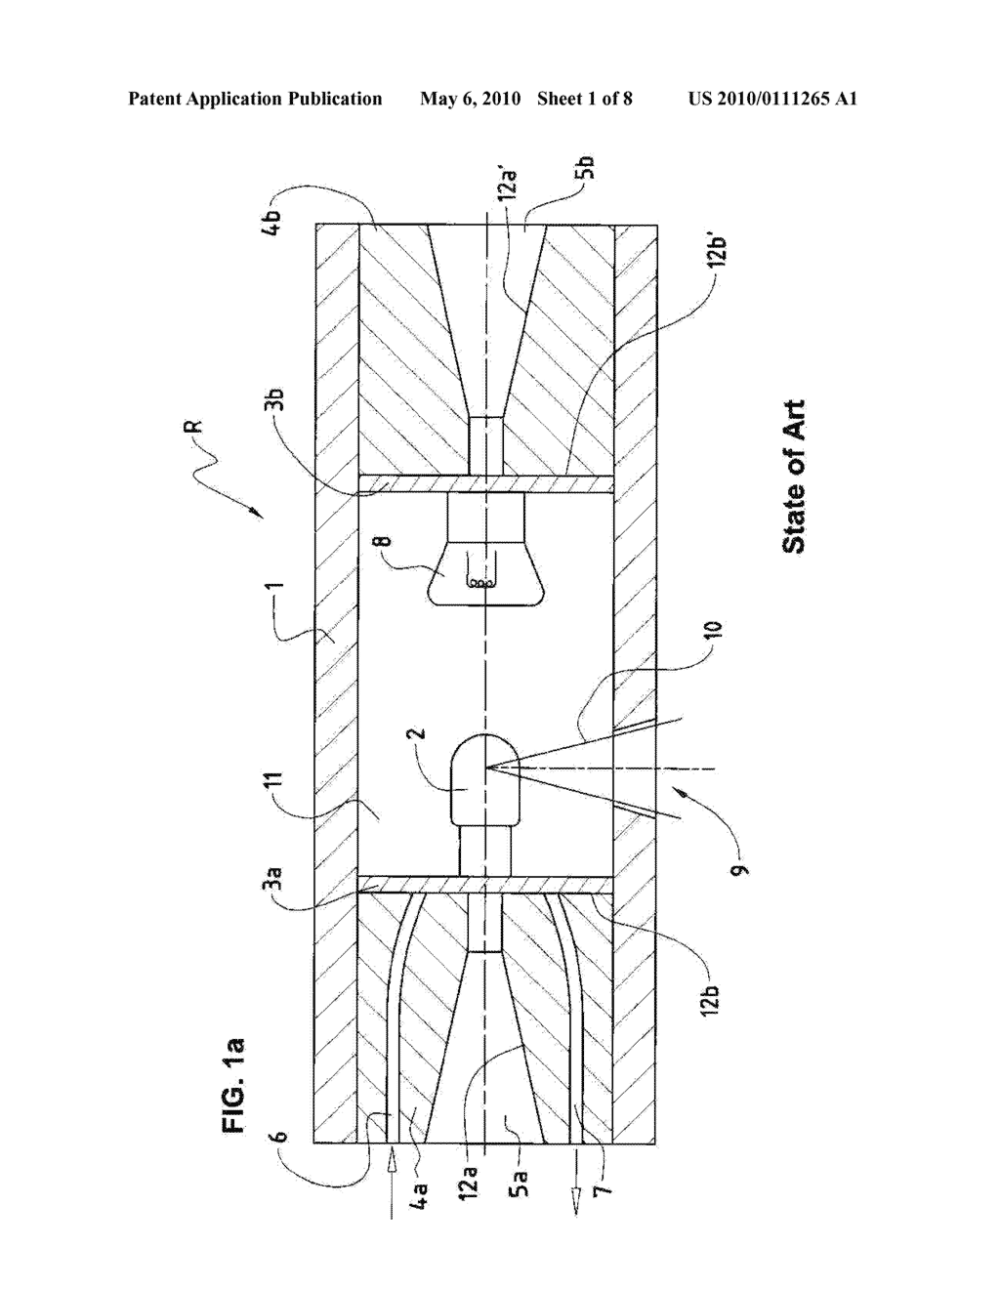 medium resolution of x ray tube with an anode isolation element for liquid cooling and a receptacle for a high voltage plug diagram schematic and image 02